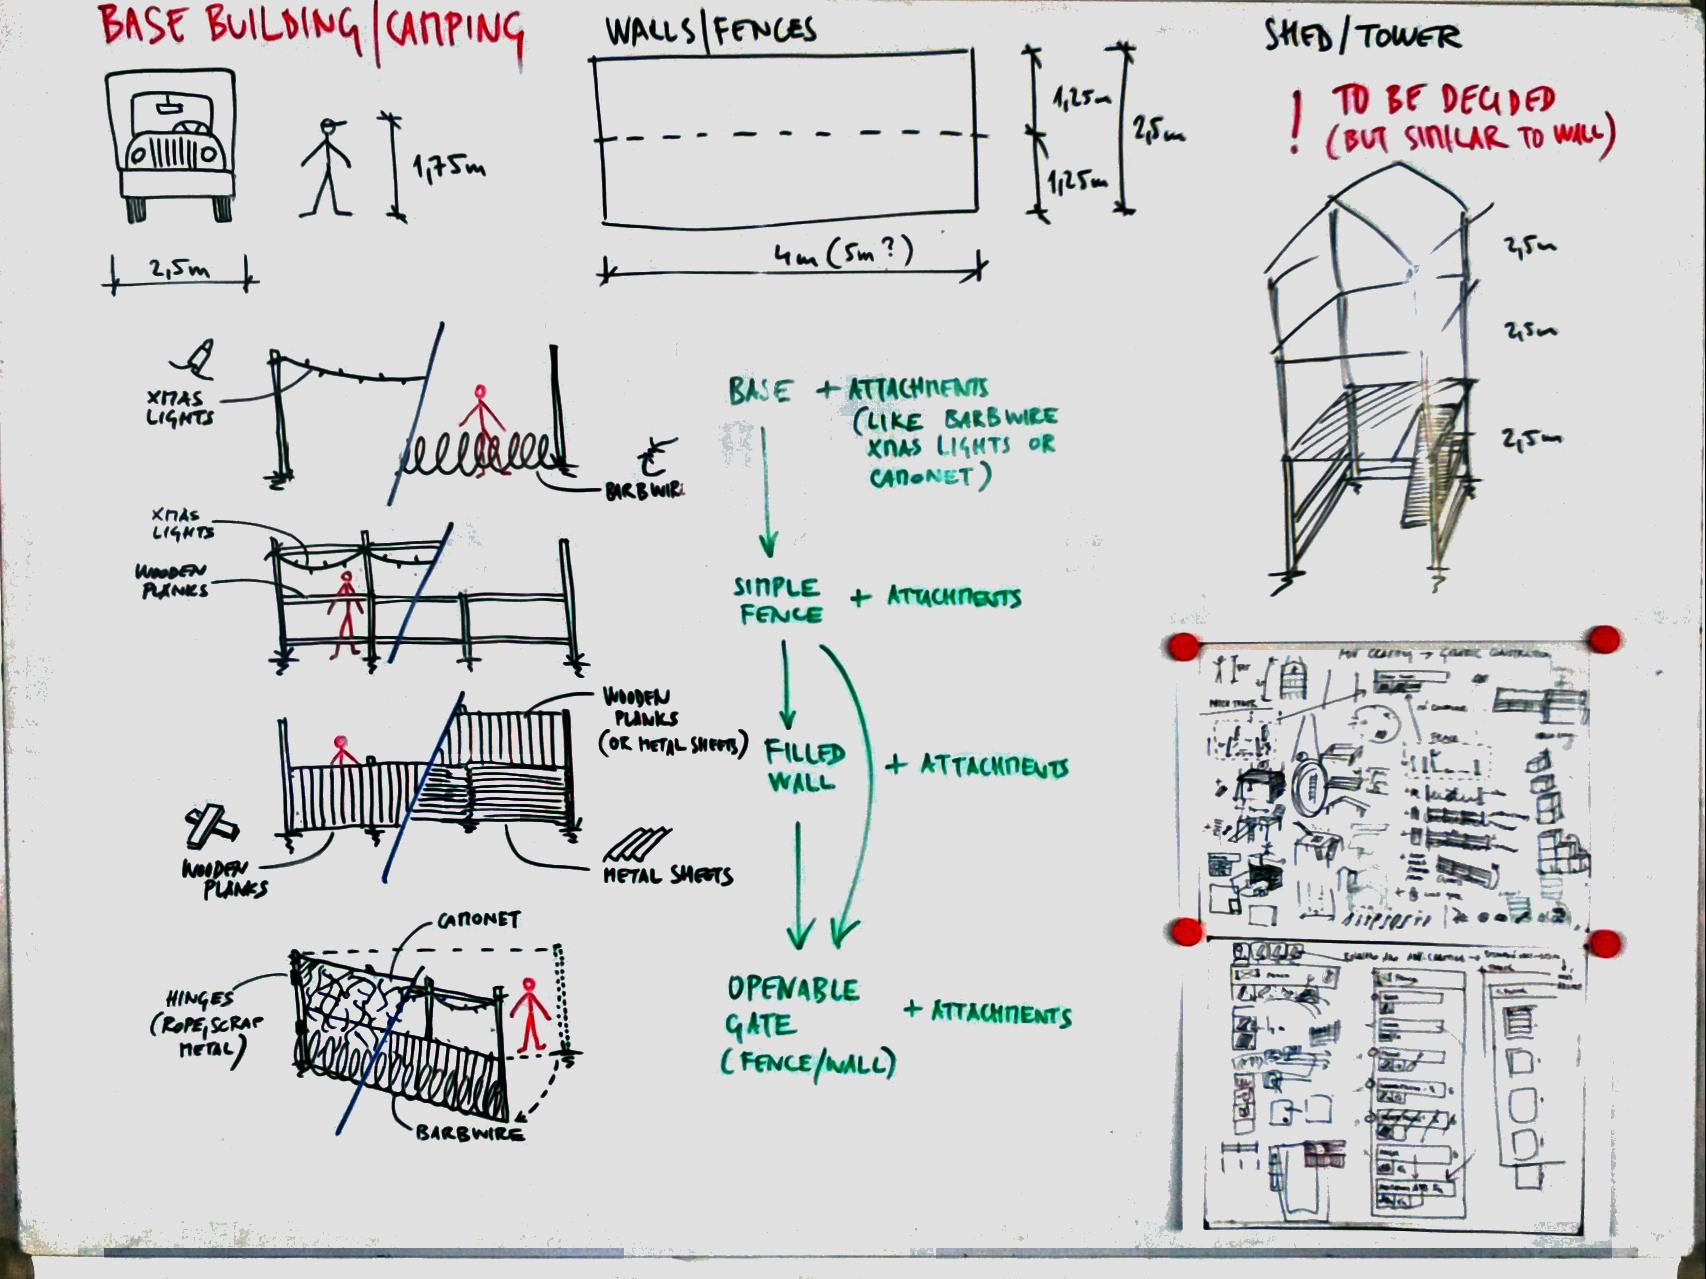 Early Whiteboard Designs for Initial DayZ Base Building